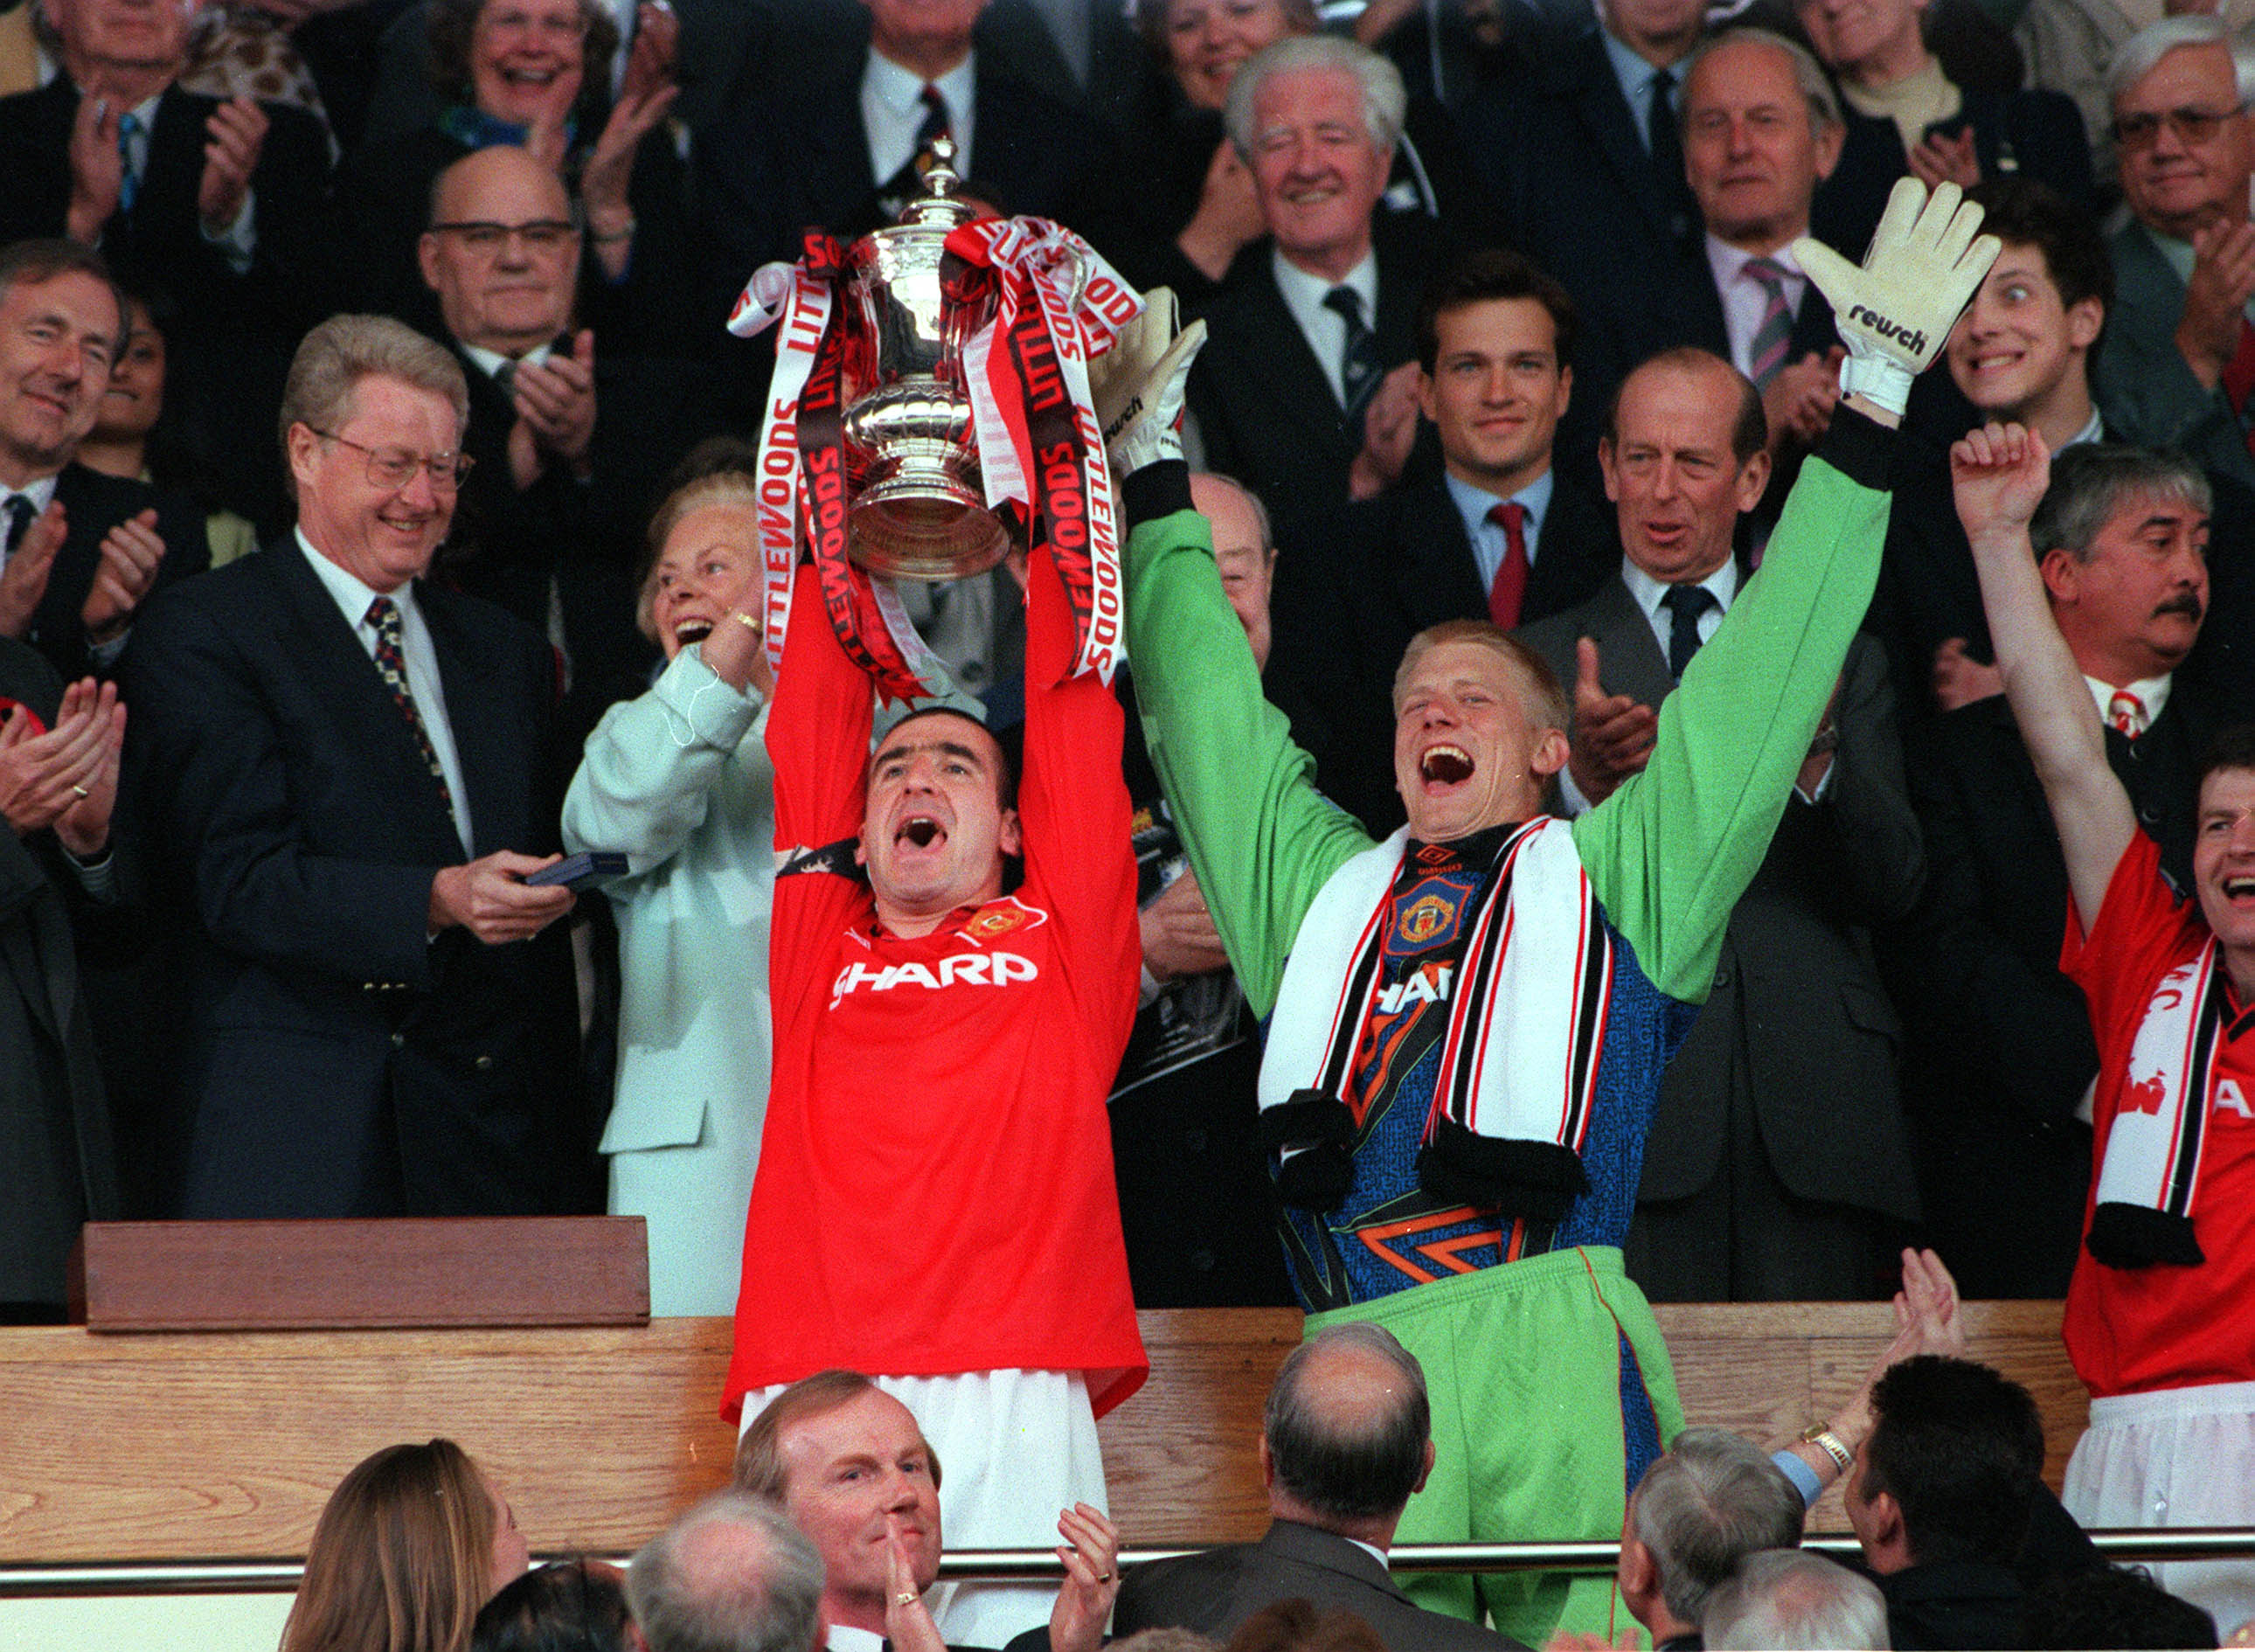 Football, 1996 FA Cup Final, Wembley, 11th May, 1996, Manchester United 1 v Liverpool 0, Manchester United's captain Eric Cantona proudly holds aloft the trophy as he stands with goalkeeper Peter Schmeichel after the presentation (Photo by Bob Thomas/Getty Images)